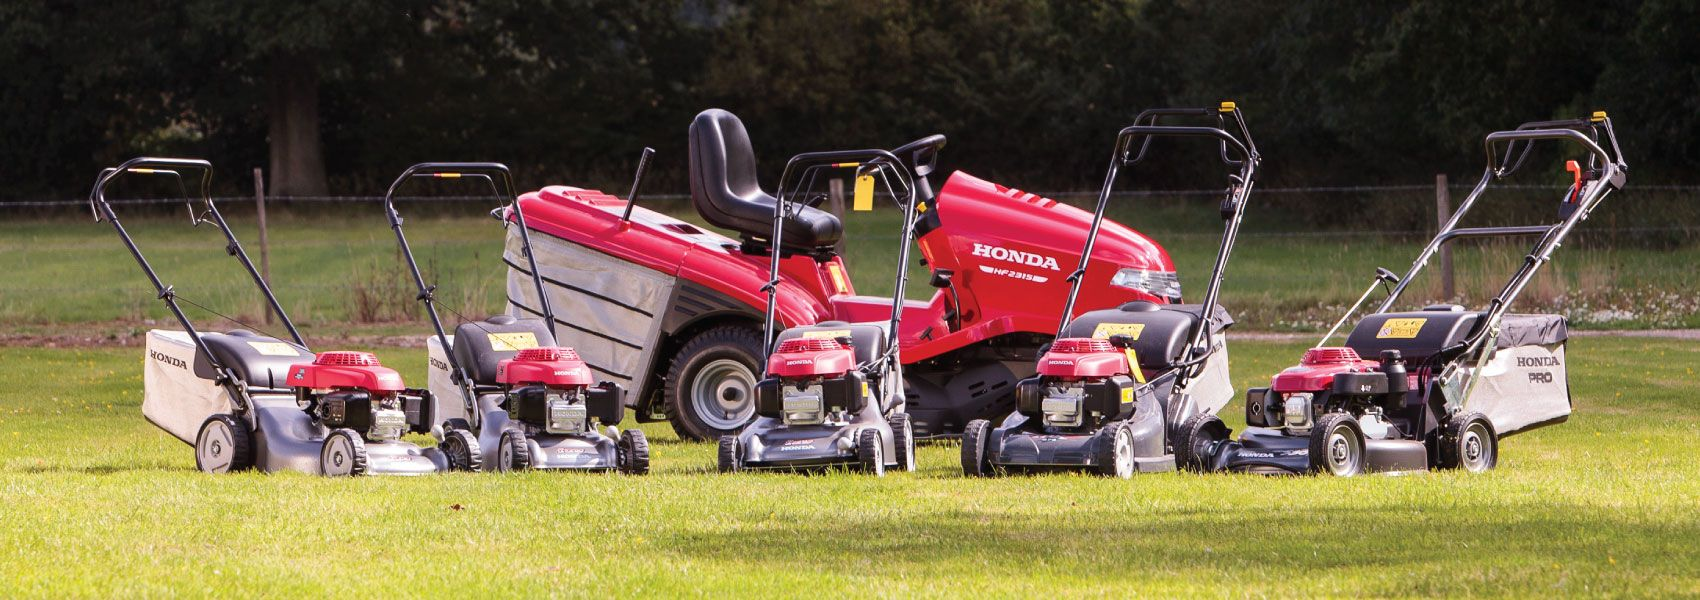 mowers-uk-honda-hampshire